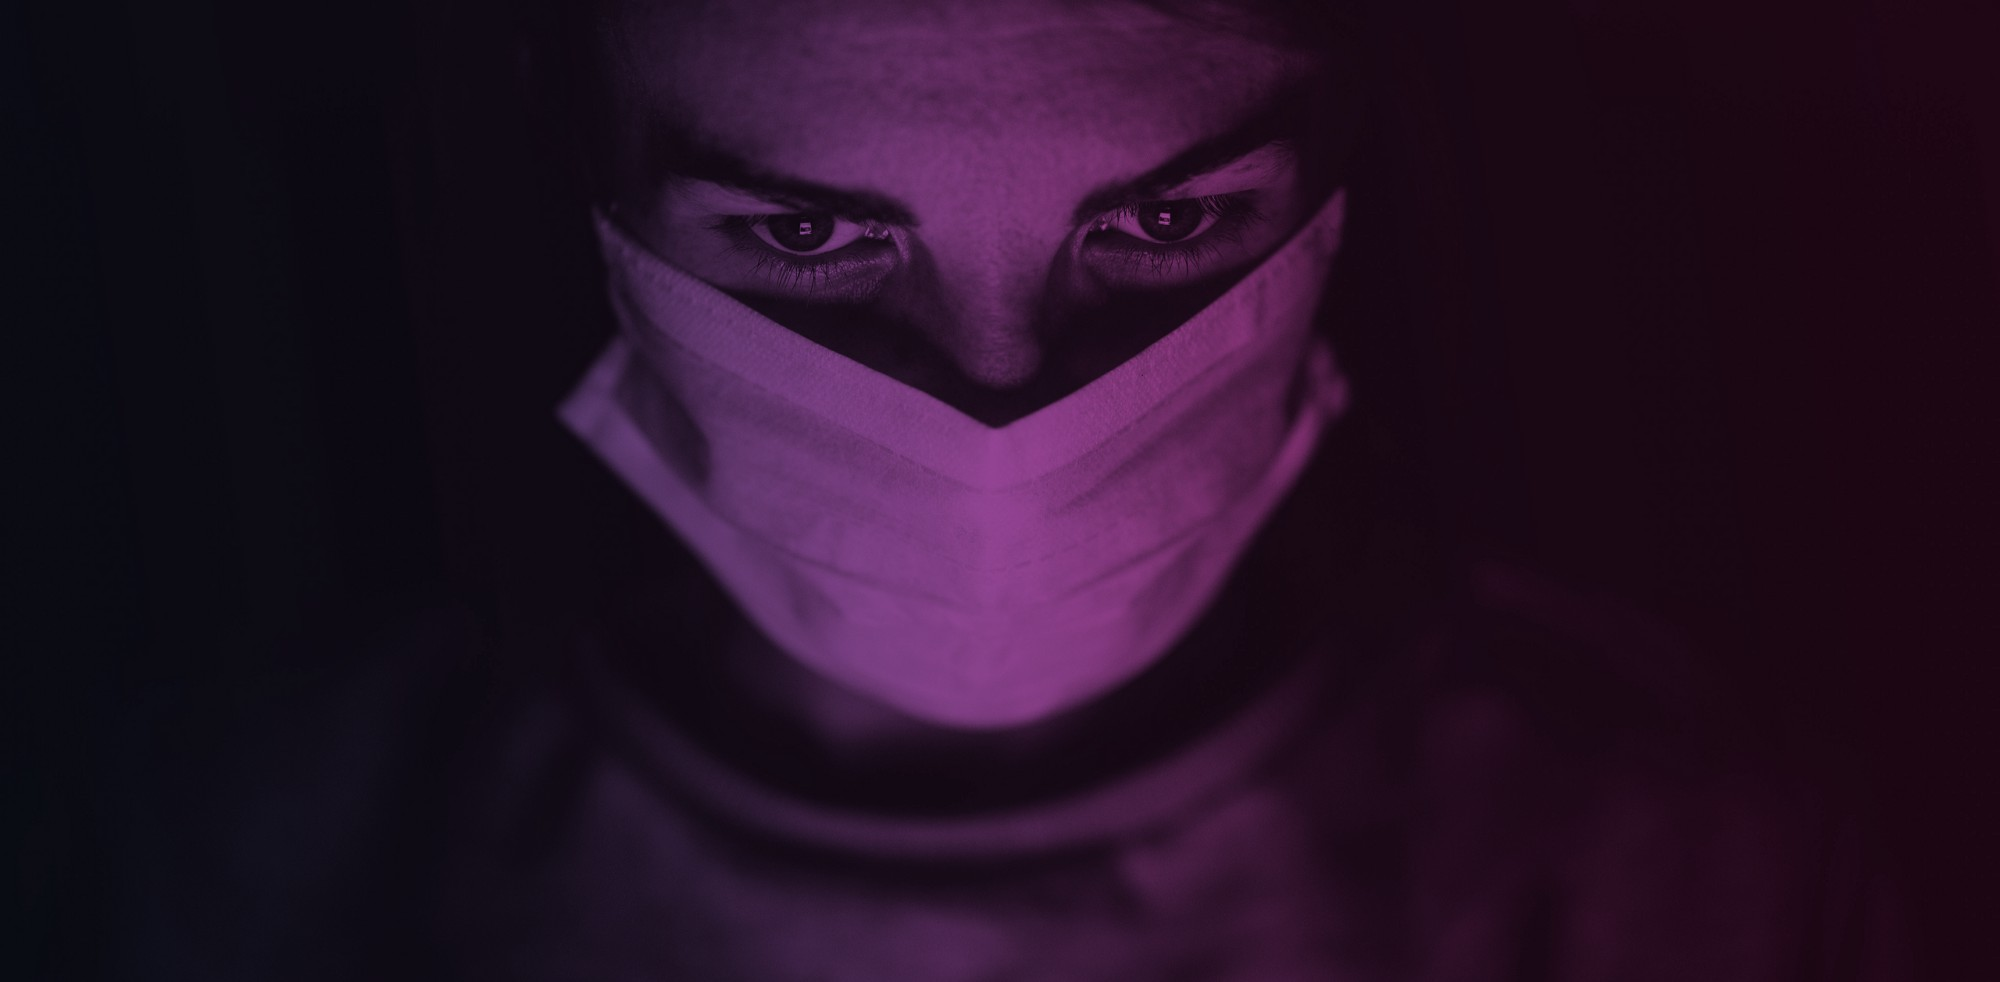 Man Wearing Face Mask In A Dark Room